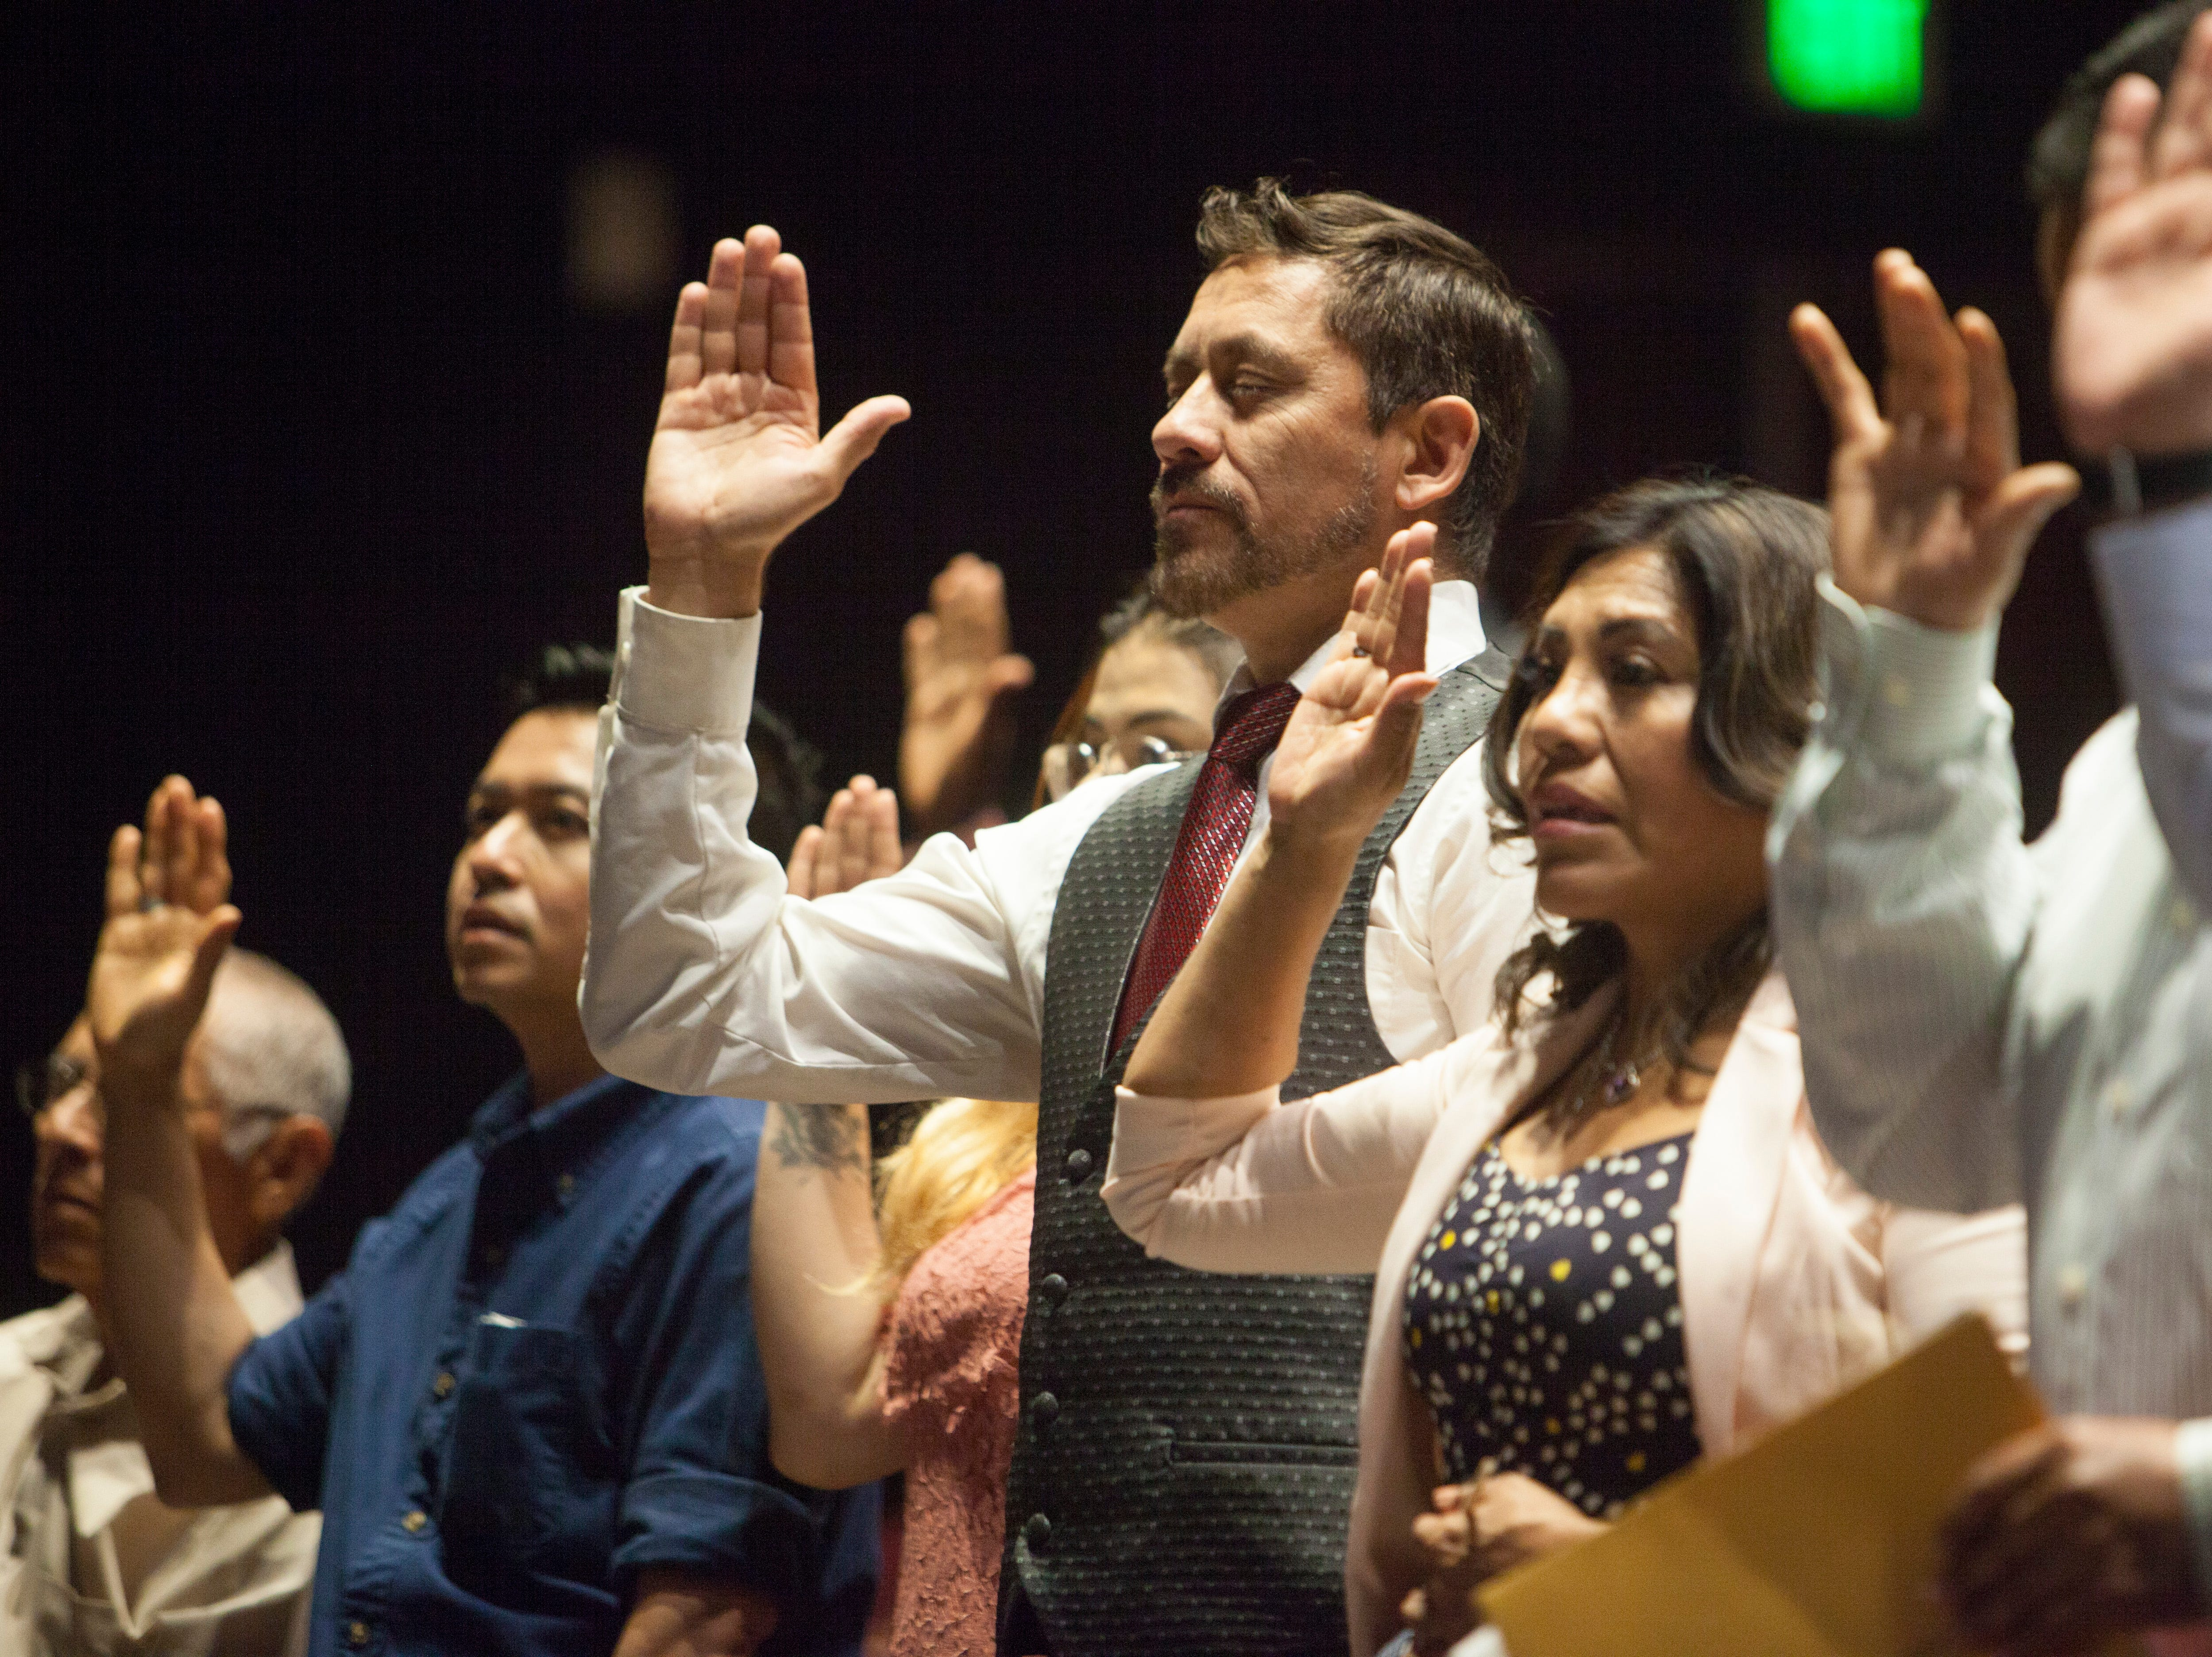 A group of 31 new U.S. citizens was sworn in during a naturalization ceremony at Dixie State University on Tuesday, May 14, 2019.